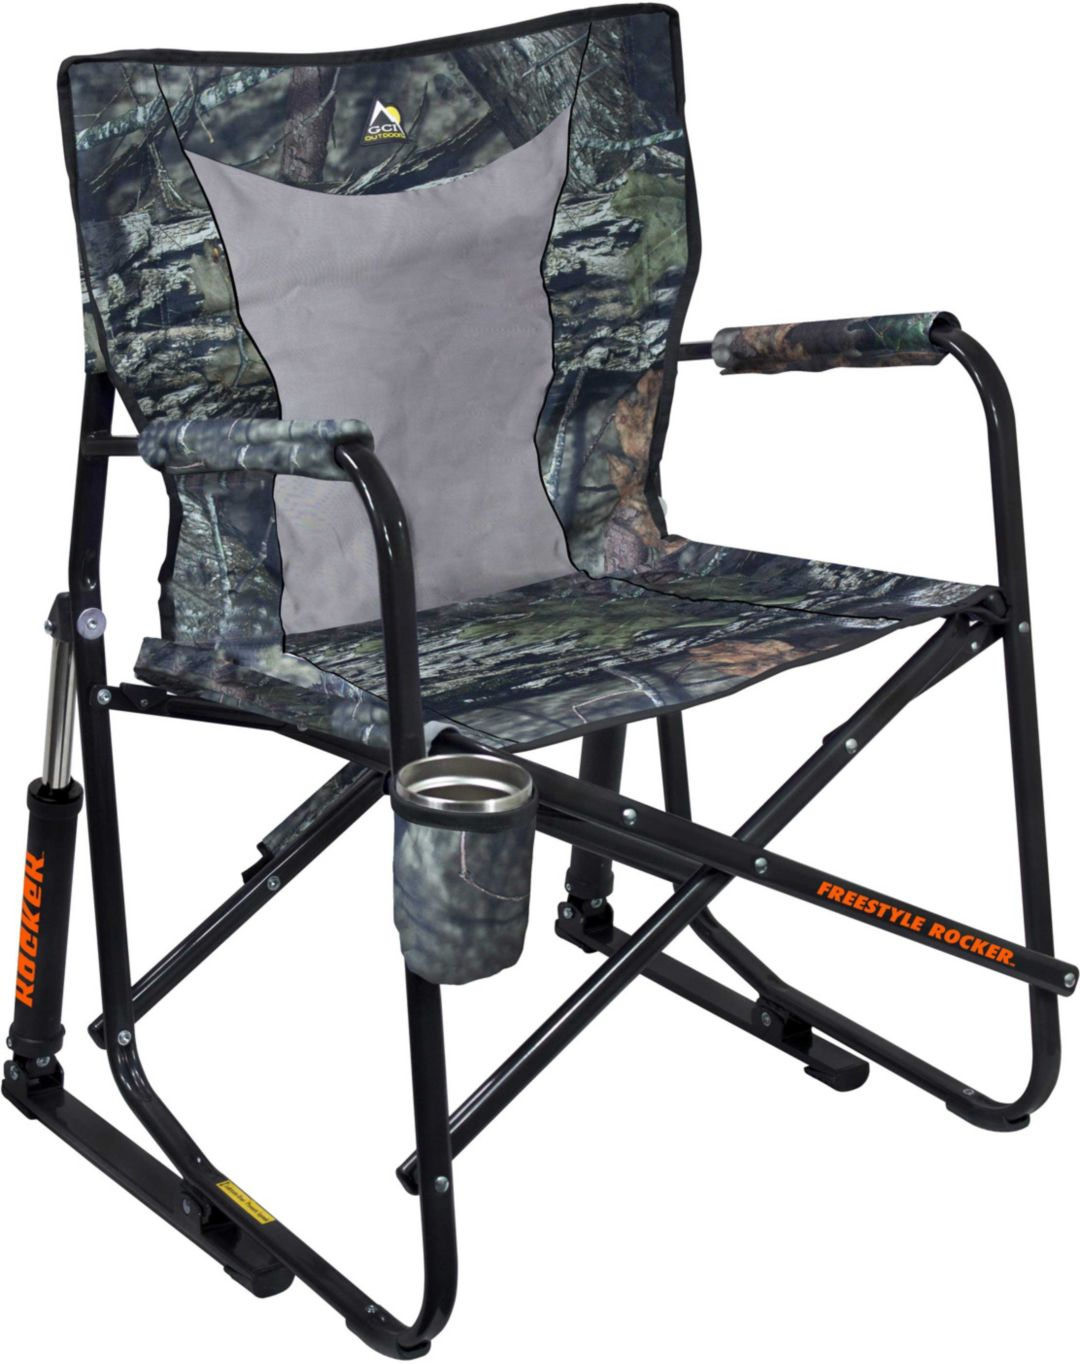 Peachy Gci Outdoor Mossy Oak Freestyle Rocker Mesh Chair Gmtry Best Dining Table And Chair Ideas Images Gmtryco